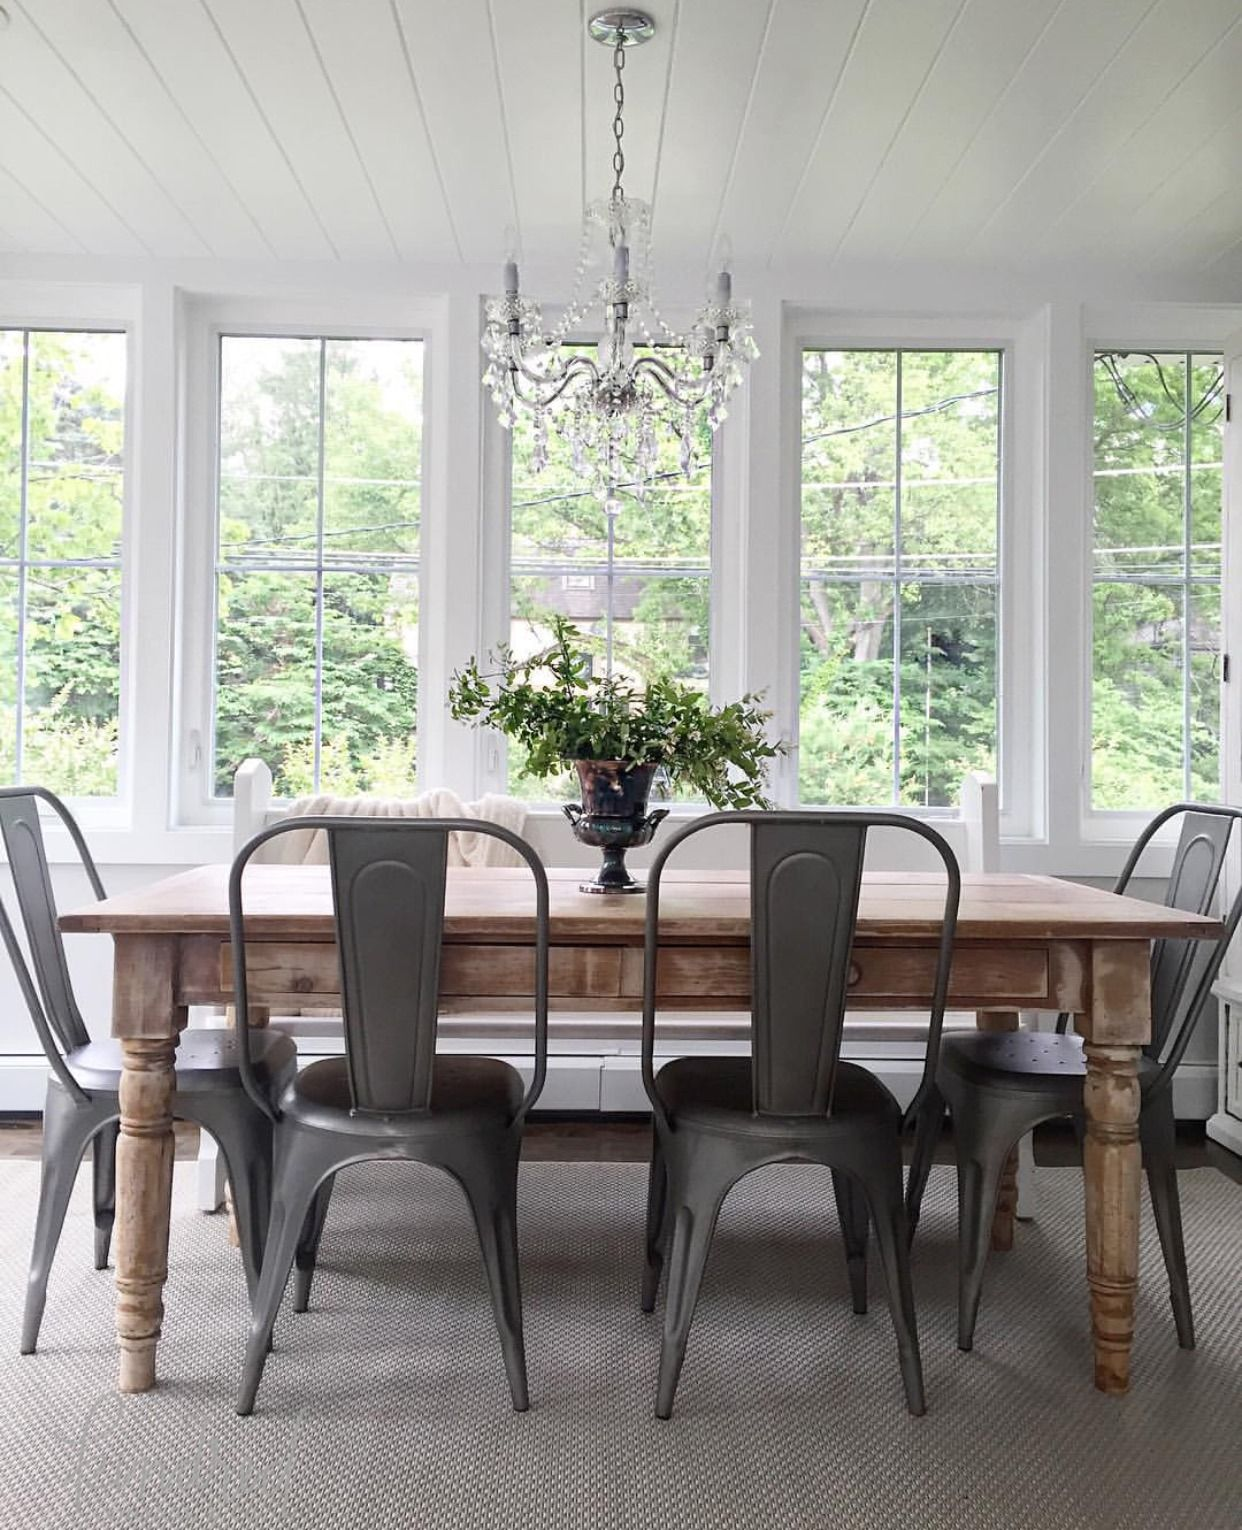 Farmhouse Dining Table And Chairs: Kindred Vintage, Farmhouse Style